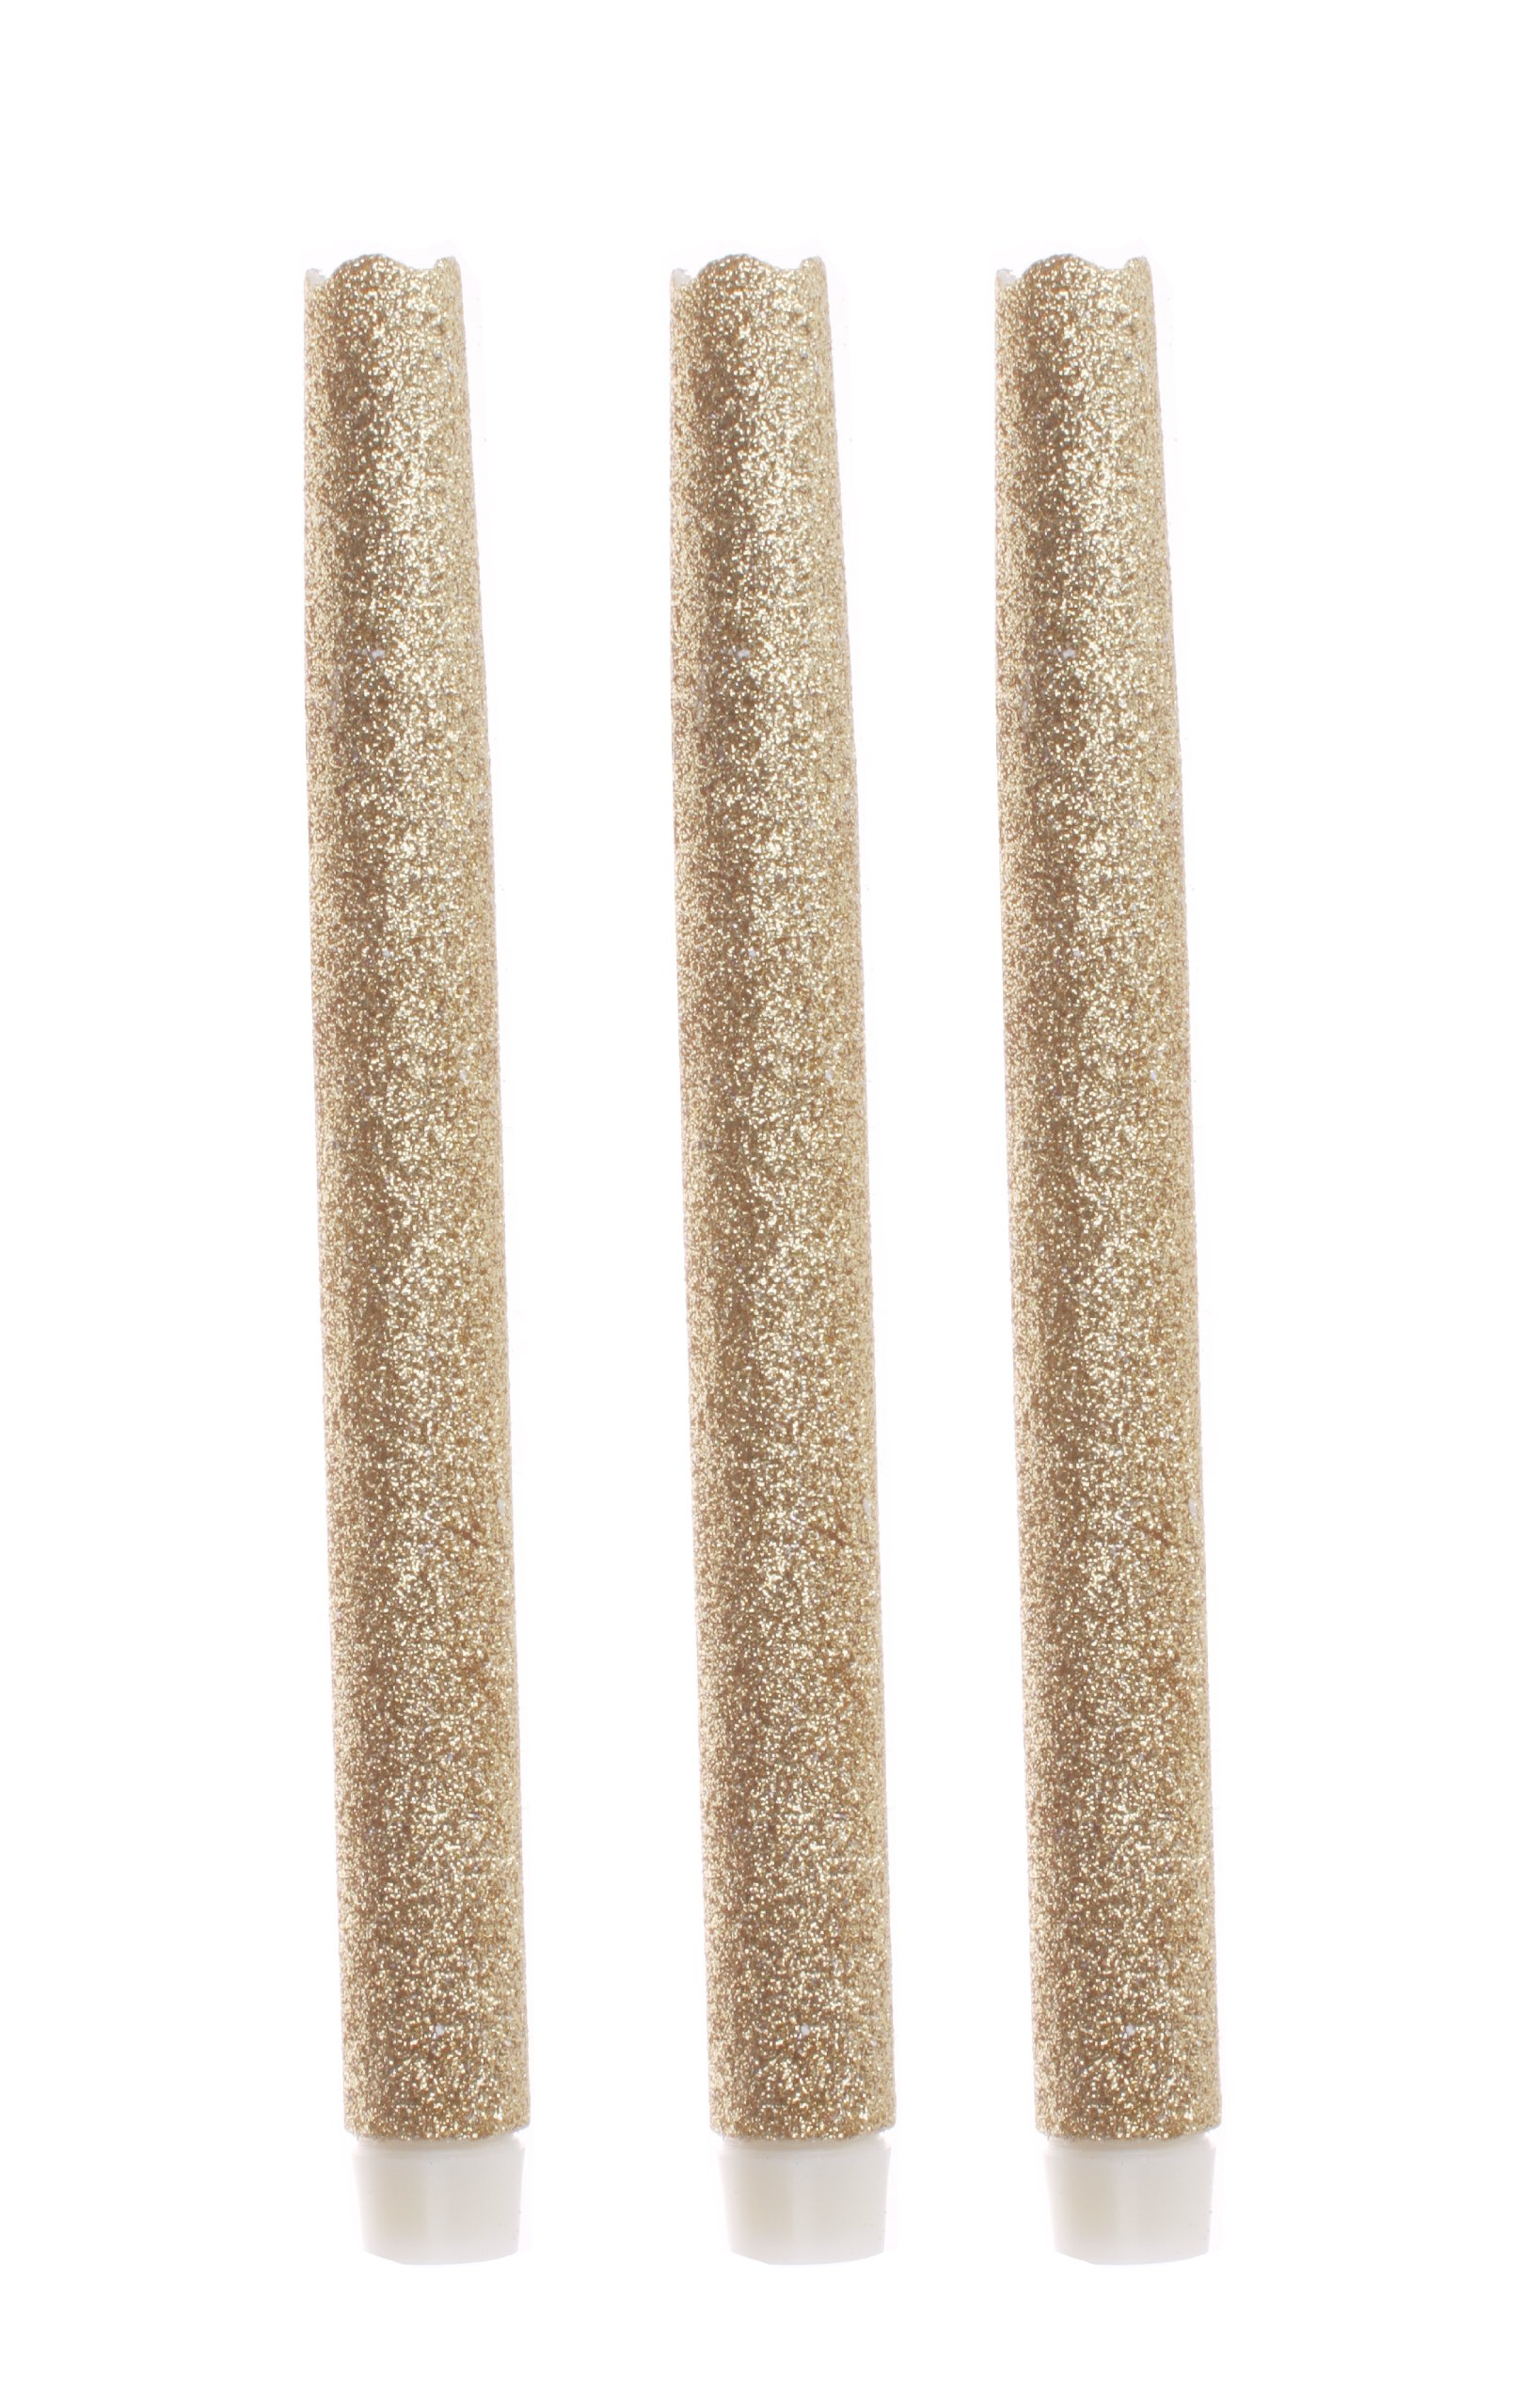 9 Inches Melted Led Taper Candles with Timer,Battery Operated,with Gold Glitter,Pack of 3